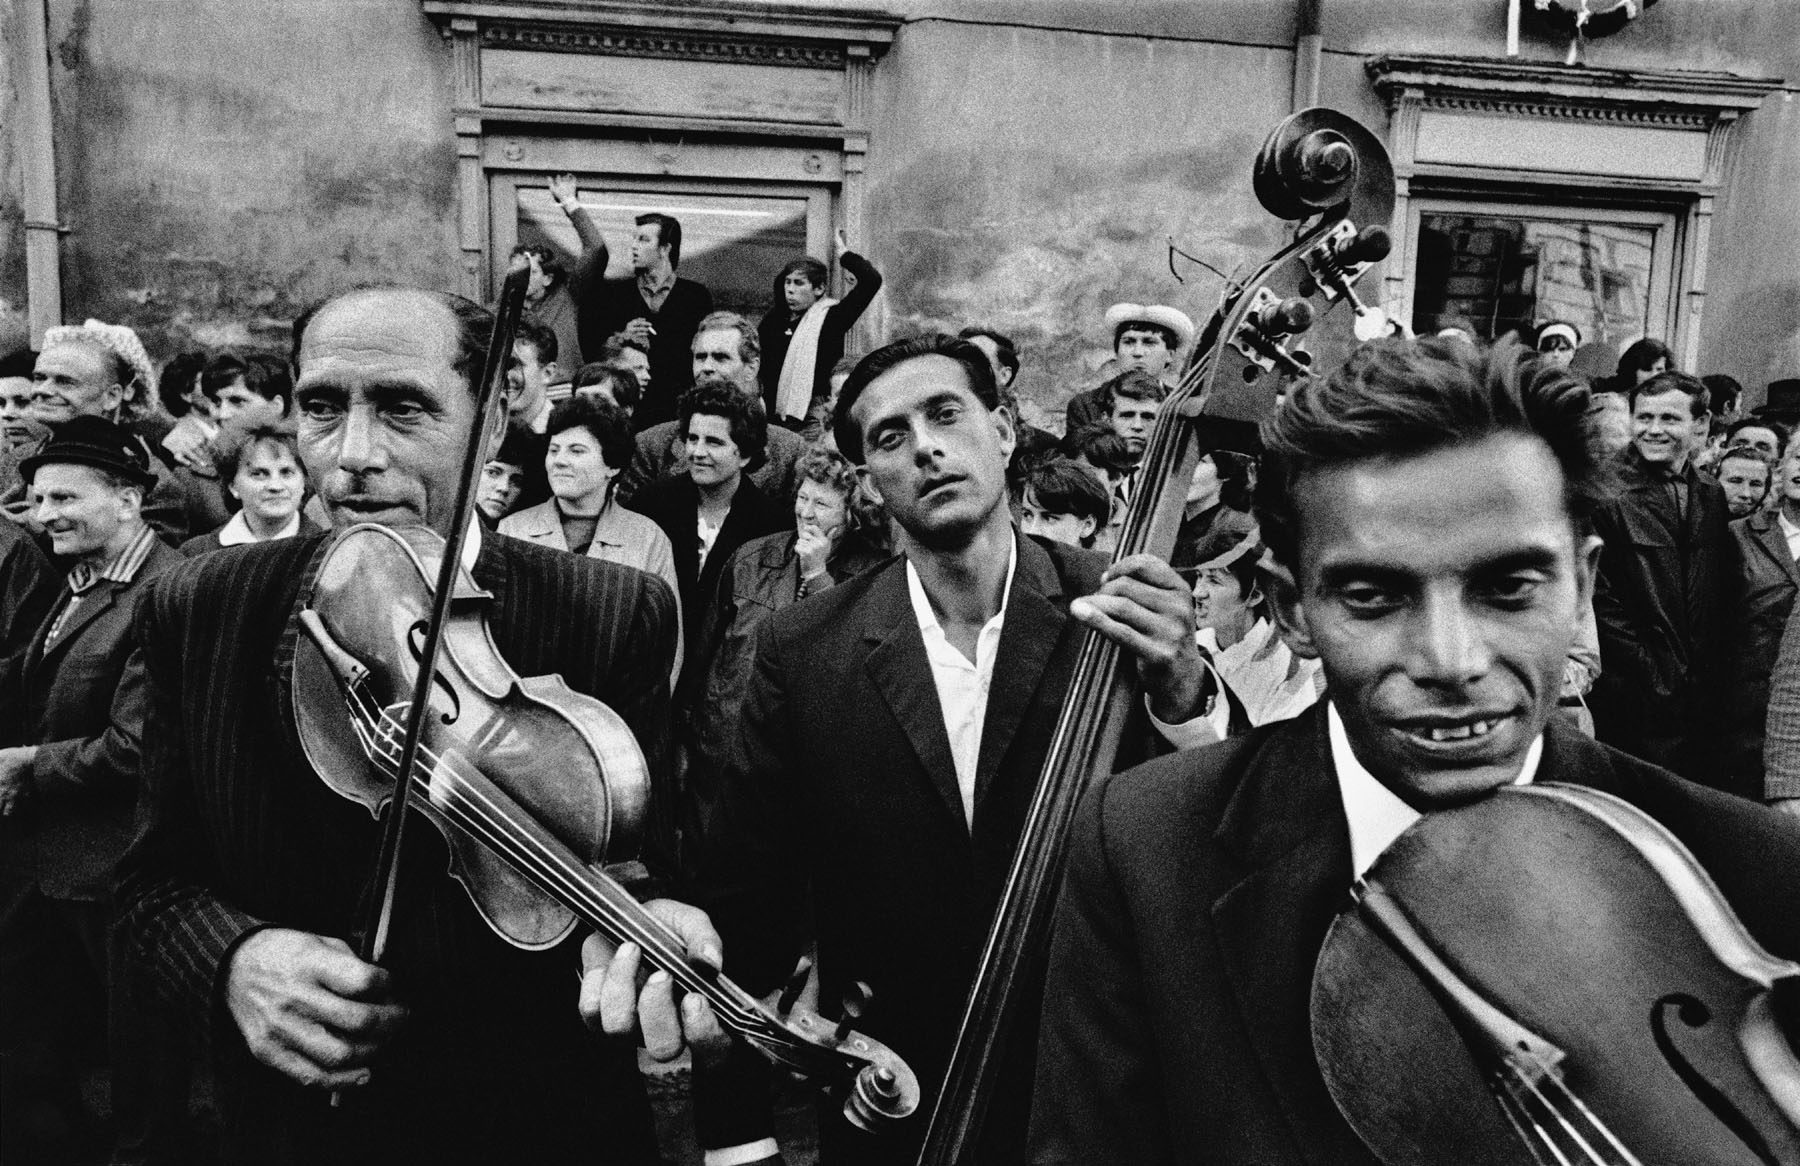 Photo  © by Josef Koudelka, courtesy of Magnum Photos